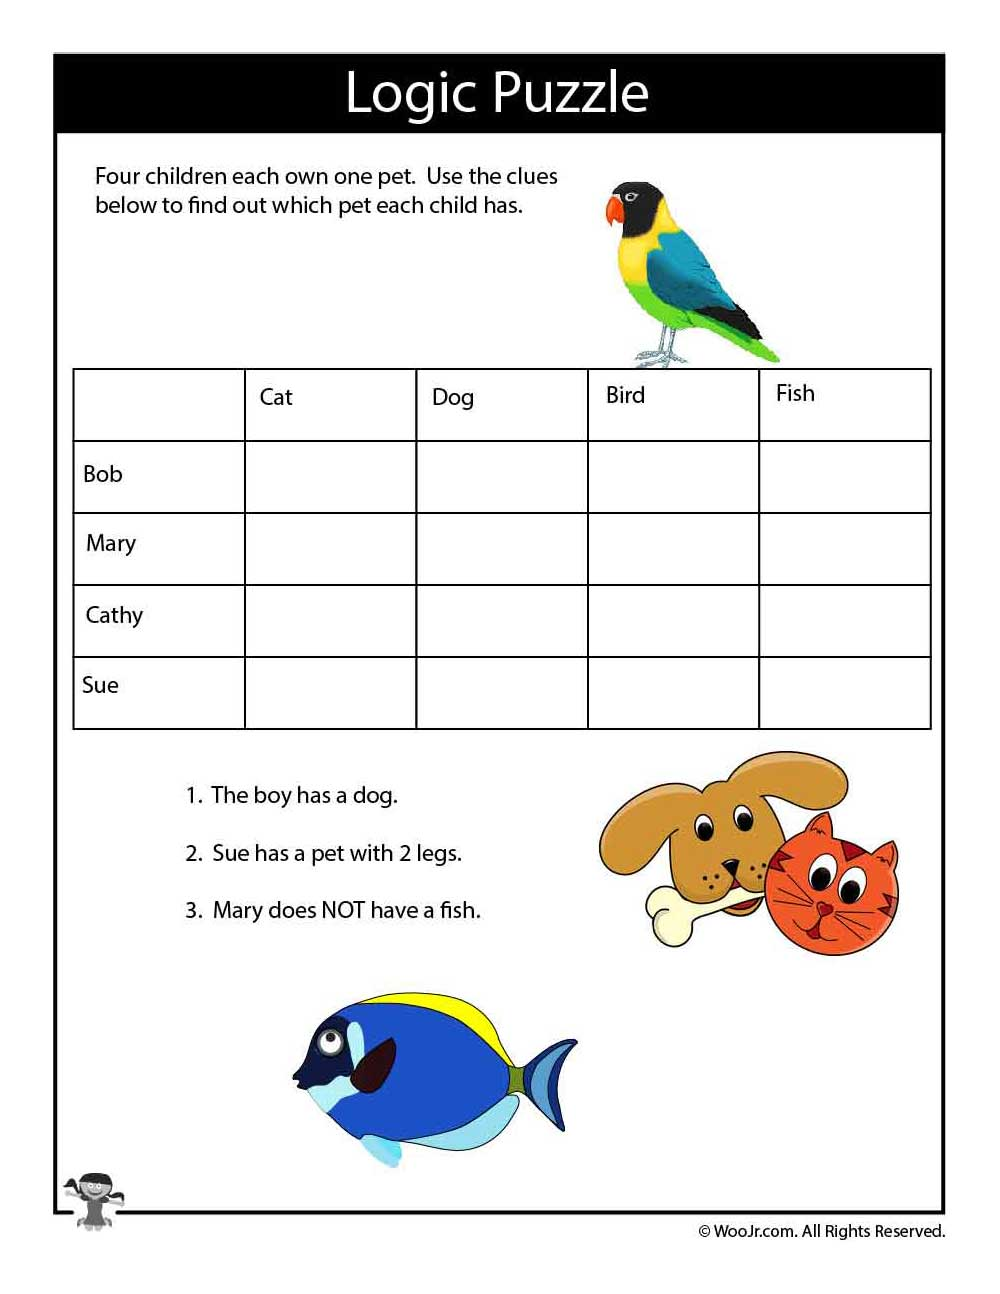 Animals Easy Logic Puzzle For Kids Woo Jr Kids Activities Easy Logic Puzzles Brain Teasers For Kids Math Logic Puzzles [ 1294 x 1000 Pixel ]